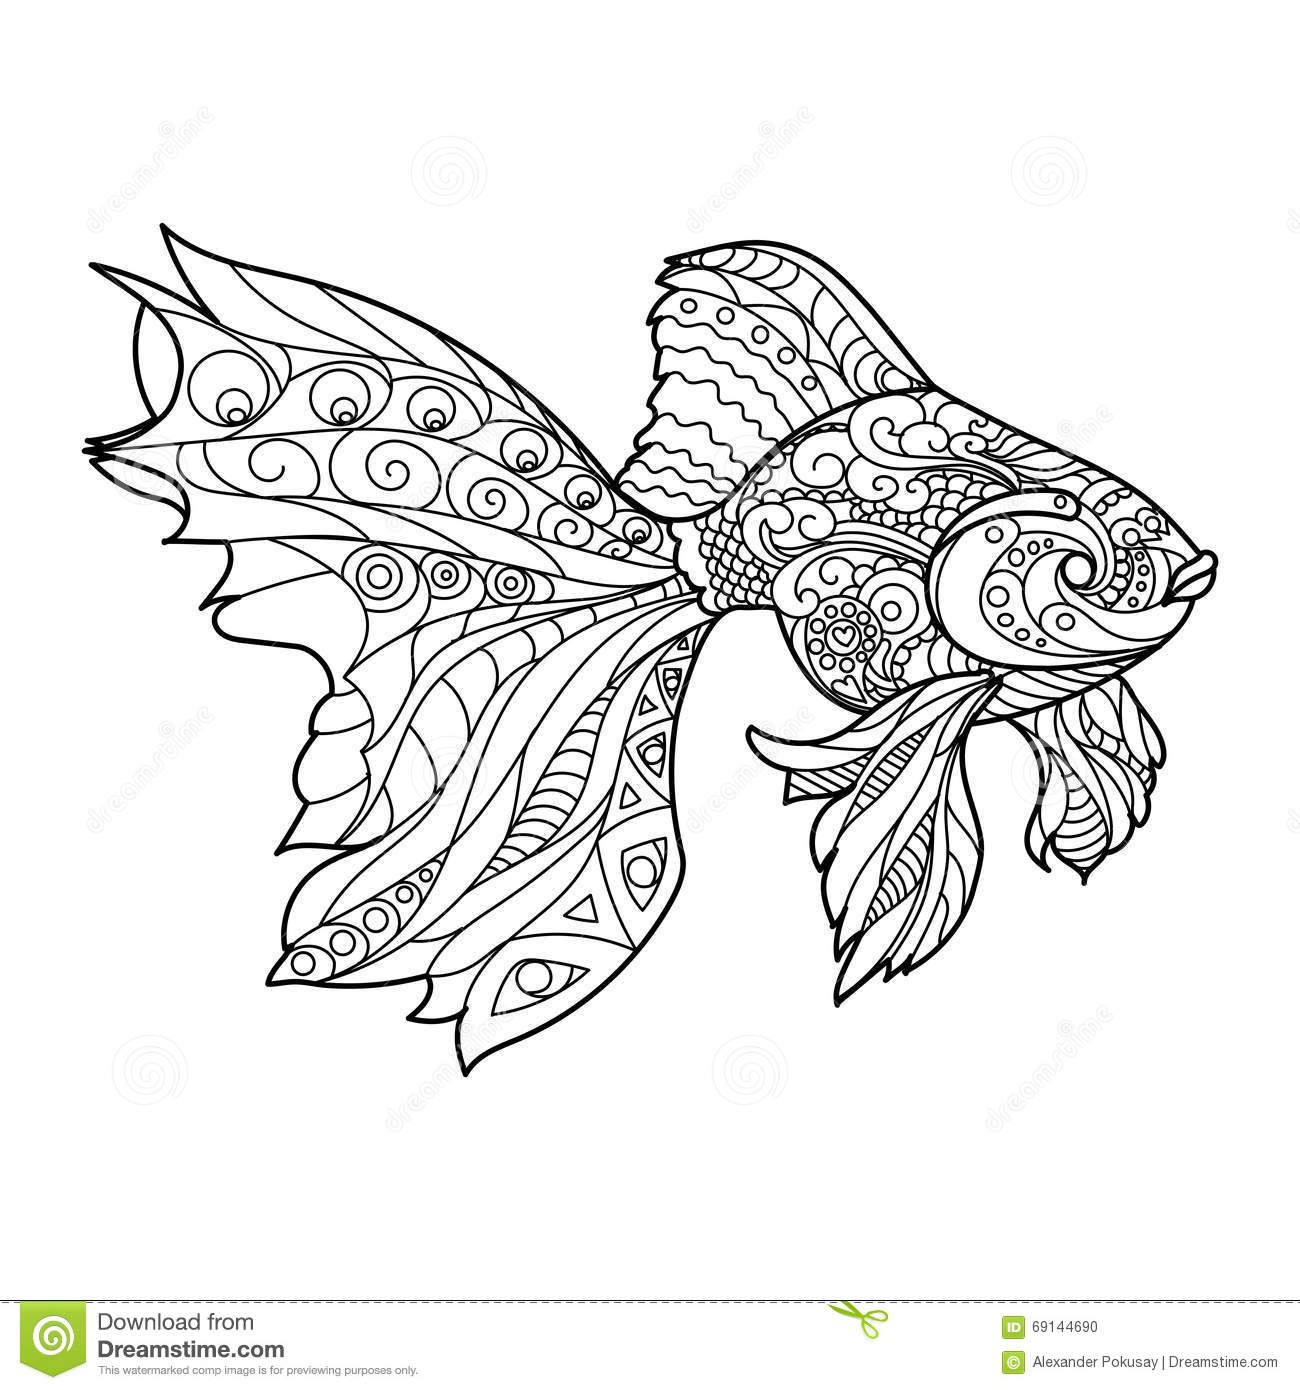 Livro de colorir para adultos pesquisa google colorir Hawaiian Fish Coloring Pages for Adults Fishy Coloring Pages printable fish pictures